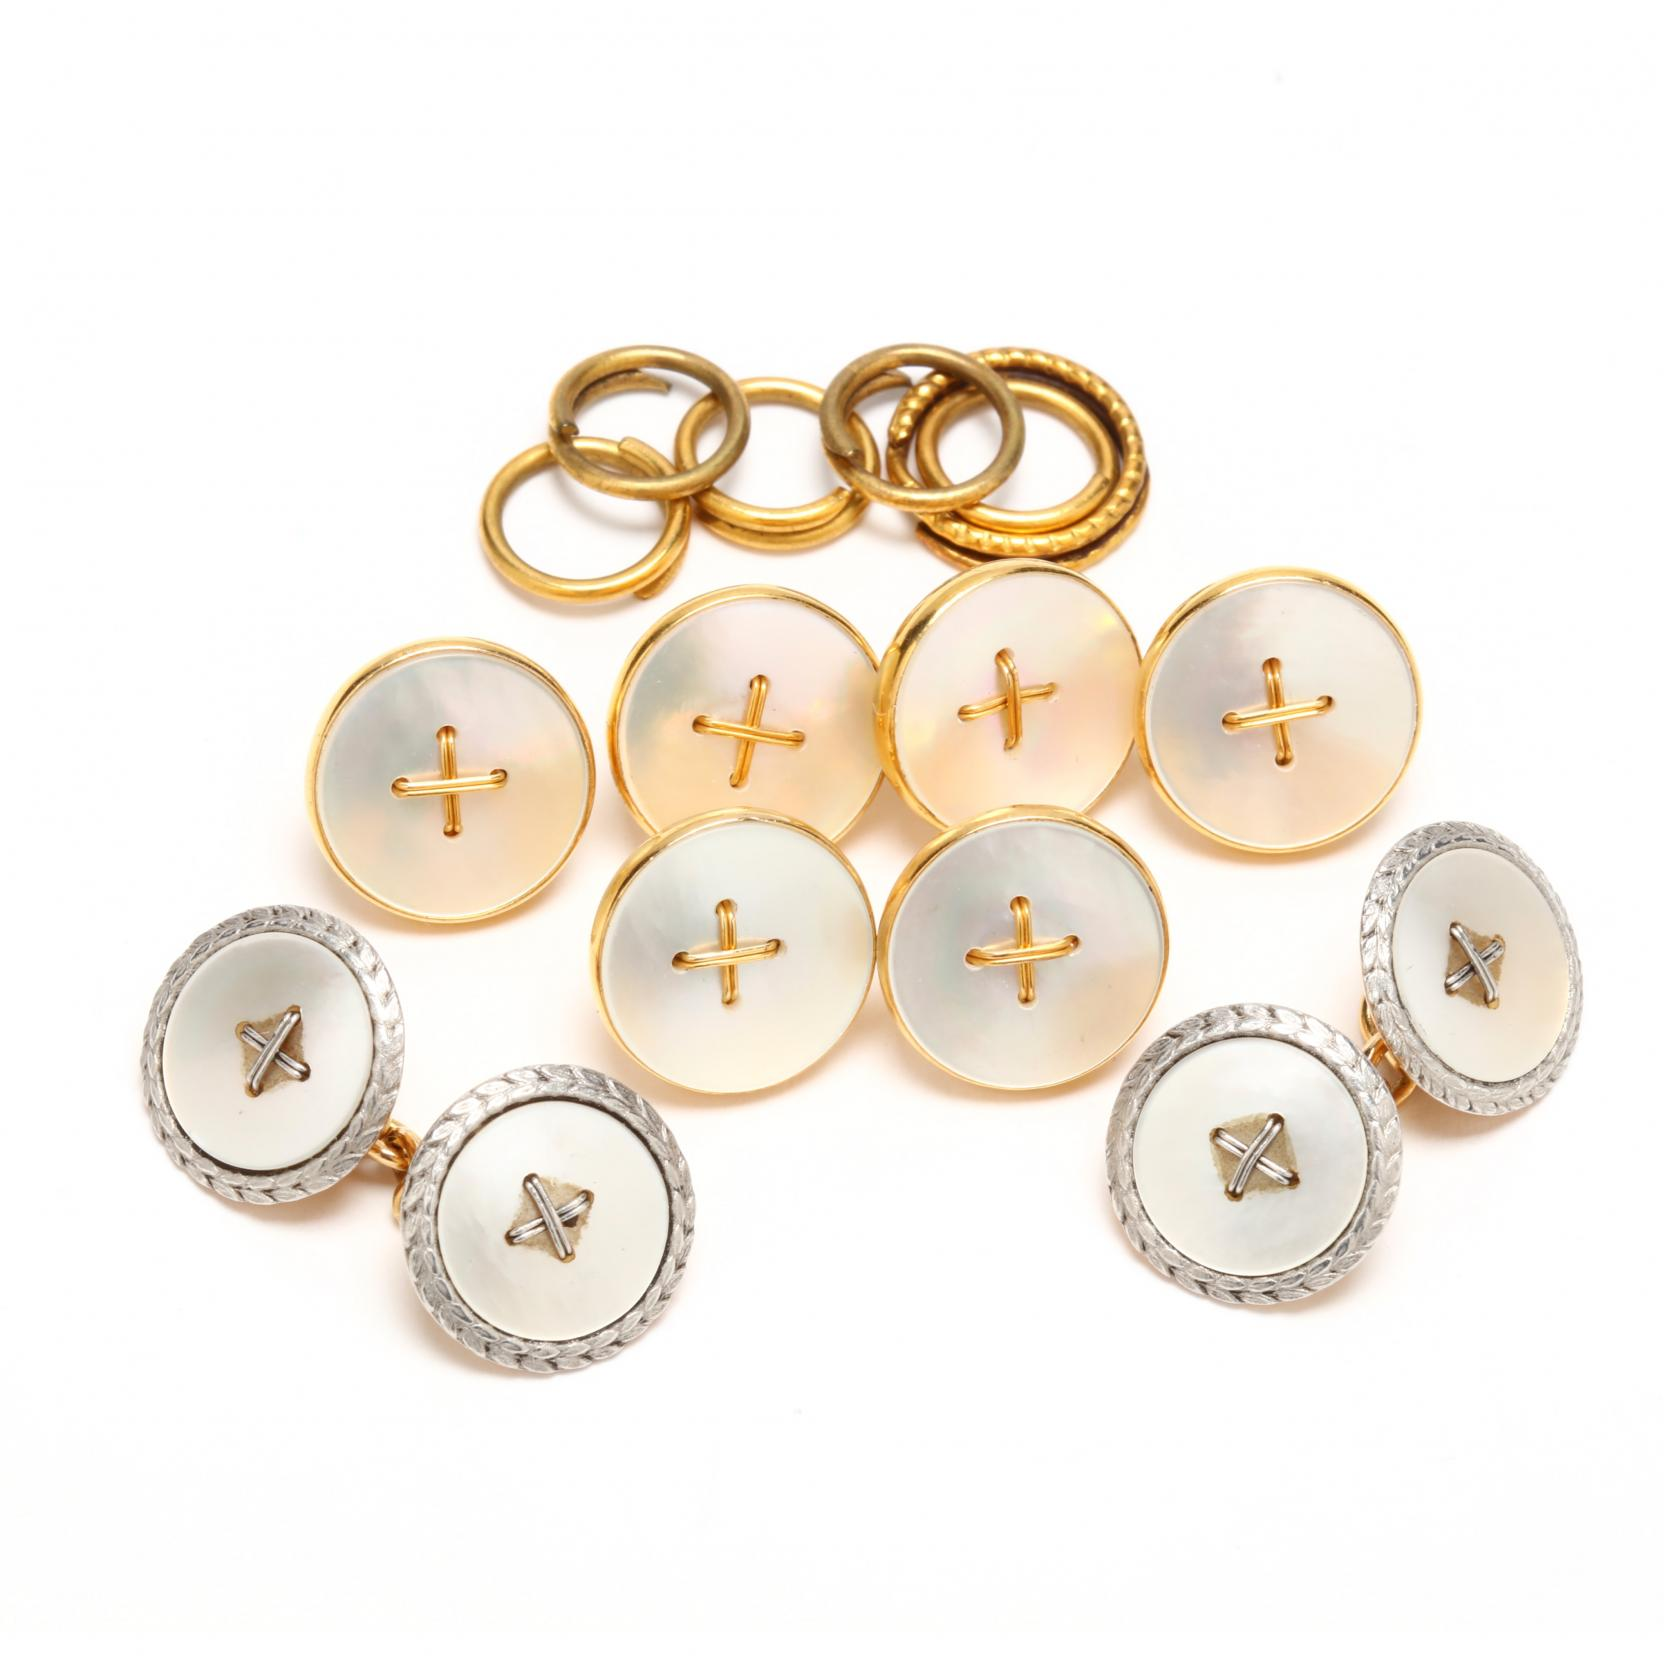 18kt-mother-of-pearl-cufflink-and-stud-sets